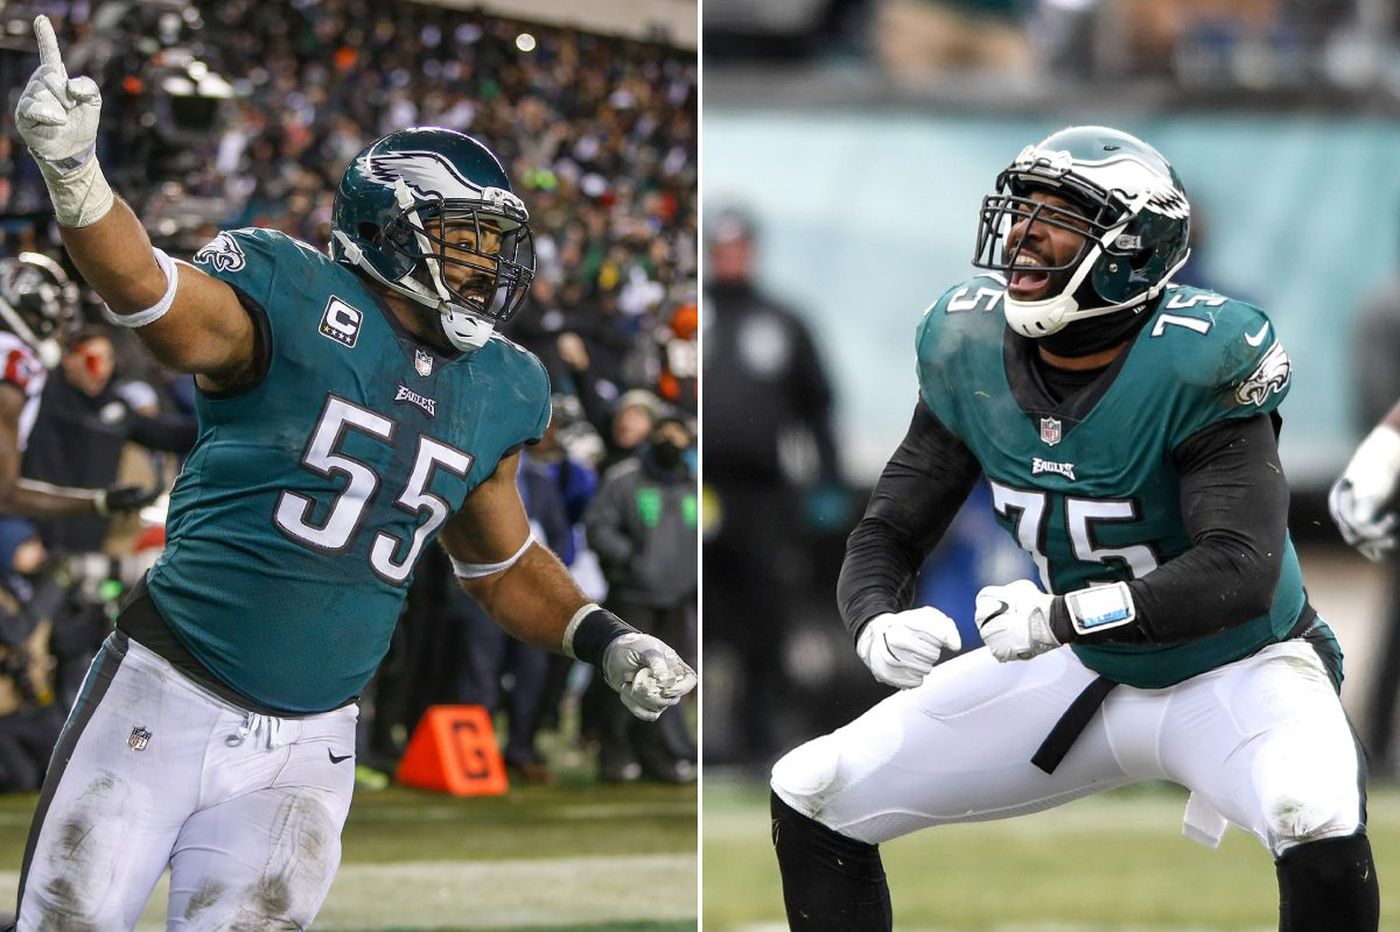 Brandon Graham and Vinny Curry took a long route but arrived at the Super Bowl   Bob Ford